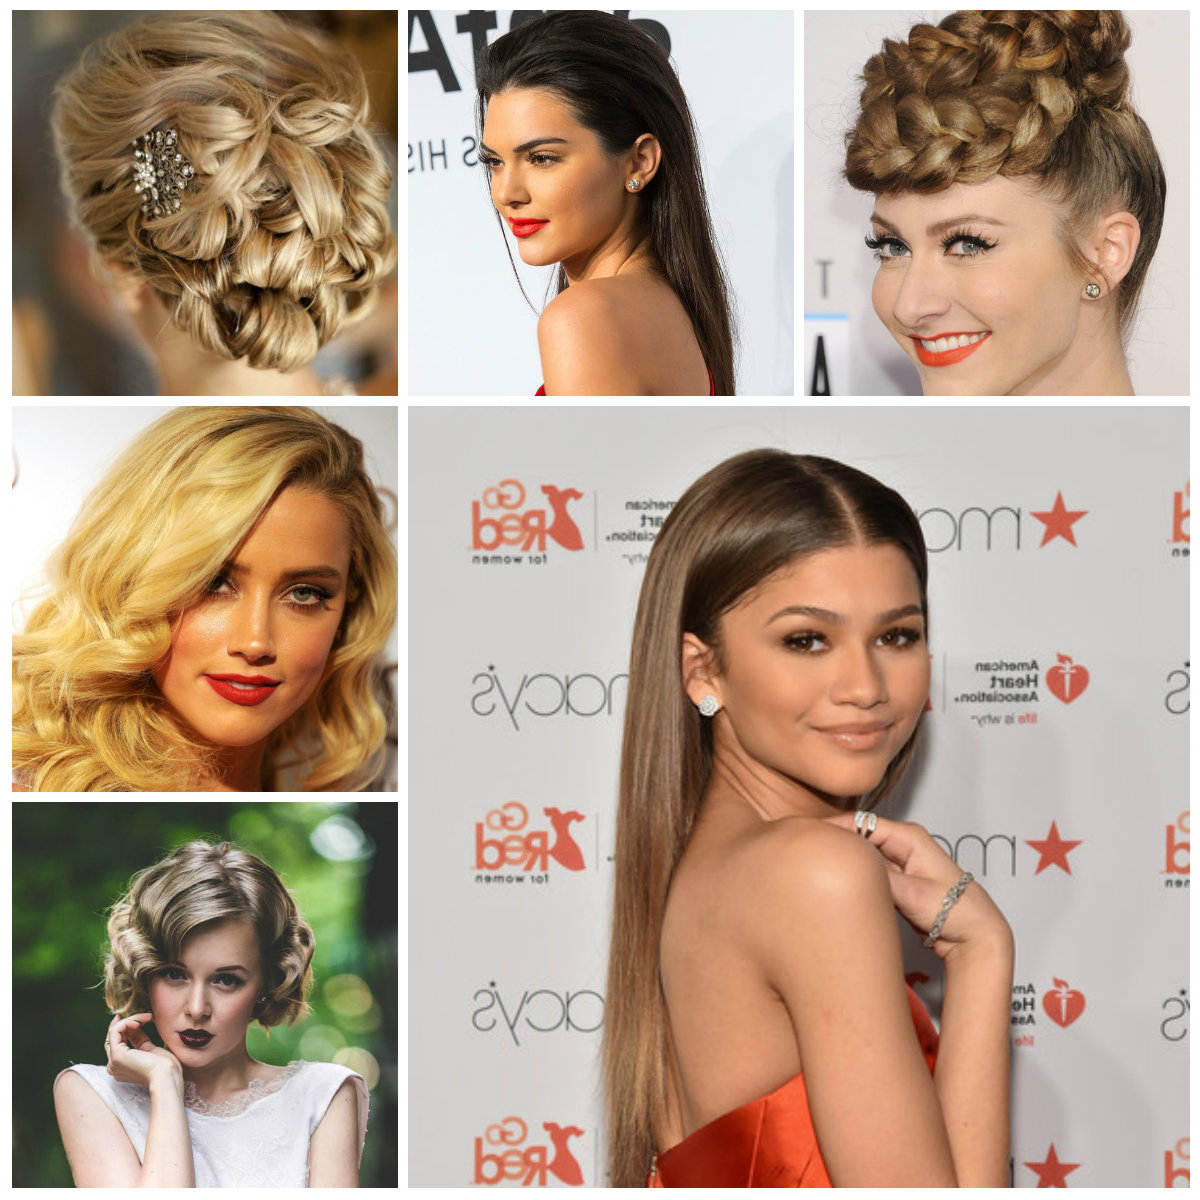 Formal Hairstyle Ideas For Holidays 2016 | 2019 Haircuts, Hairstyles intended for Short Hairstyles For Formal Event